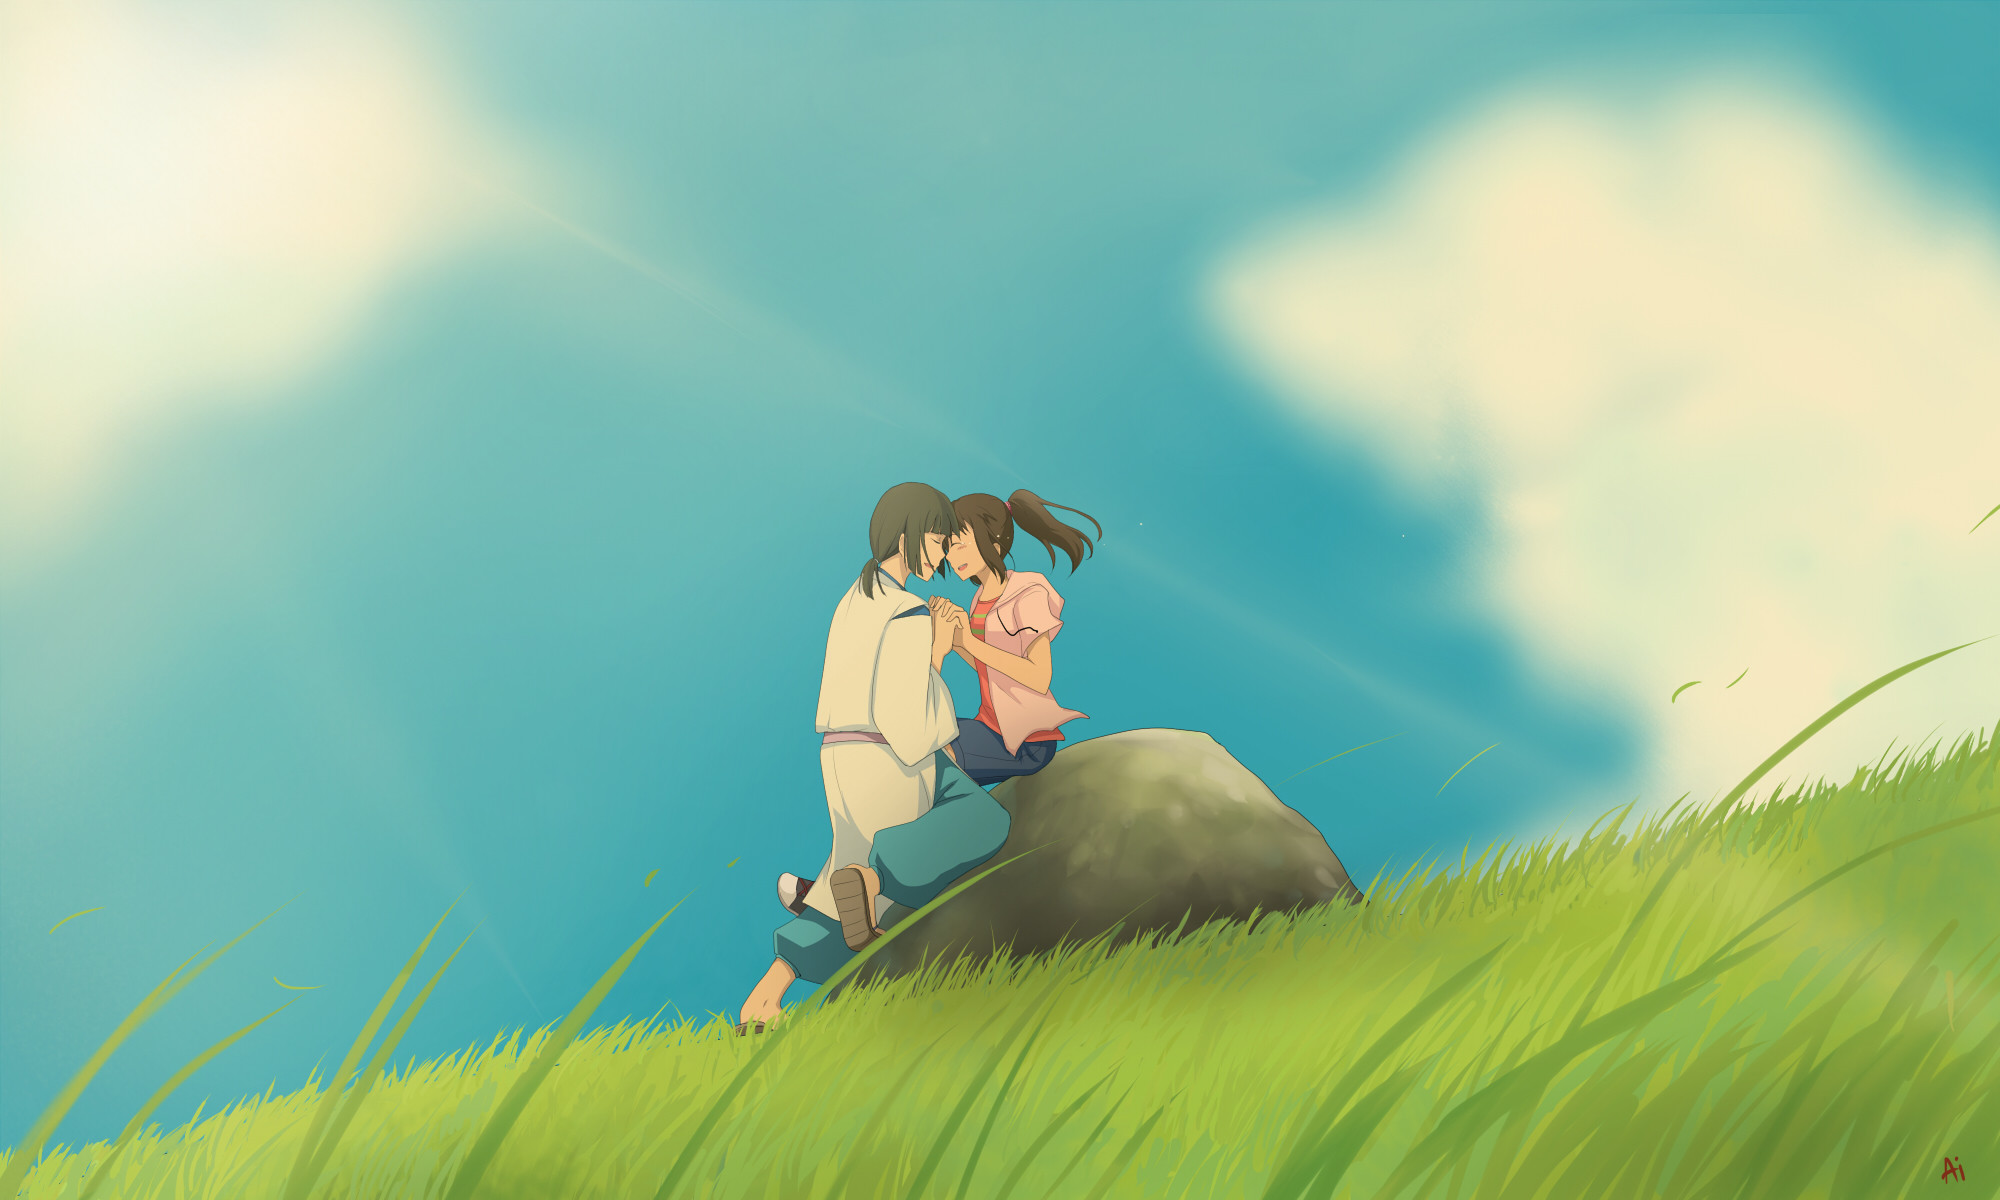 Howls Moving Castle Hd Wallpaper Chihiro Wallpapers 183 ①